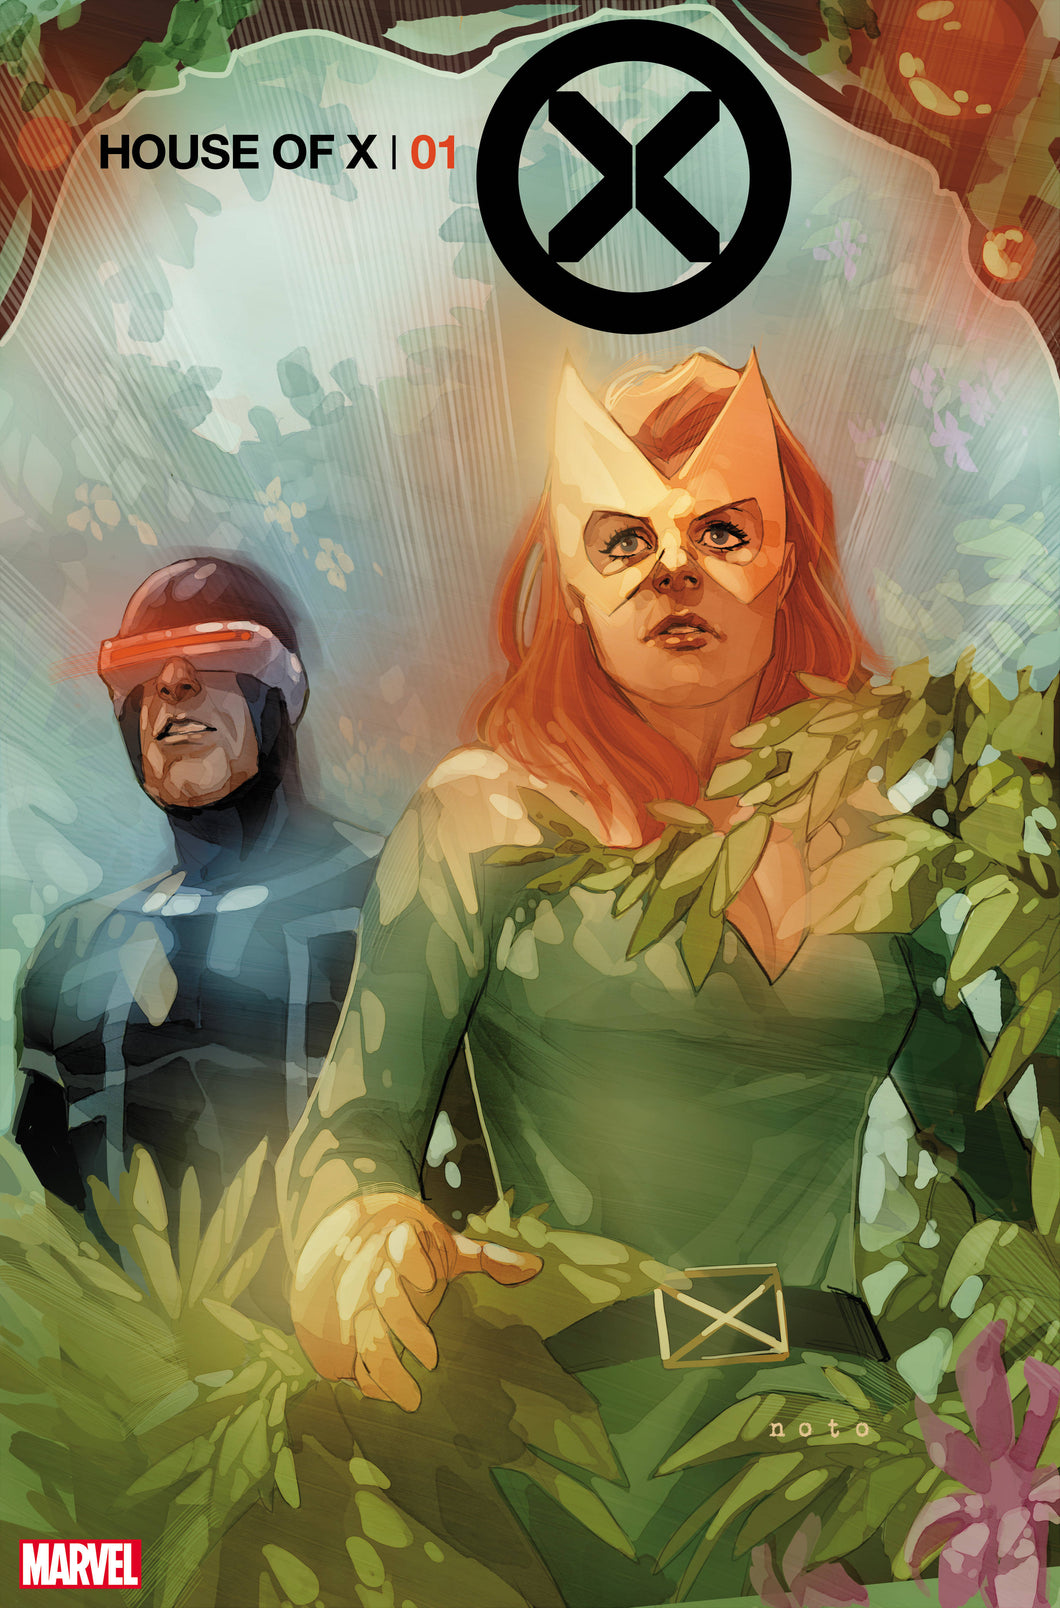 HOUSE OF X #1 NOTO 1:25 VARIANT 07/24/19 FOC 07/01/19